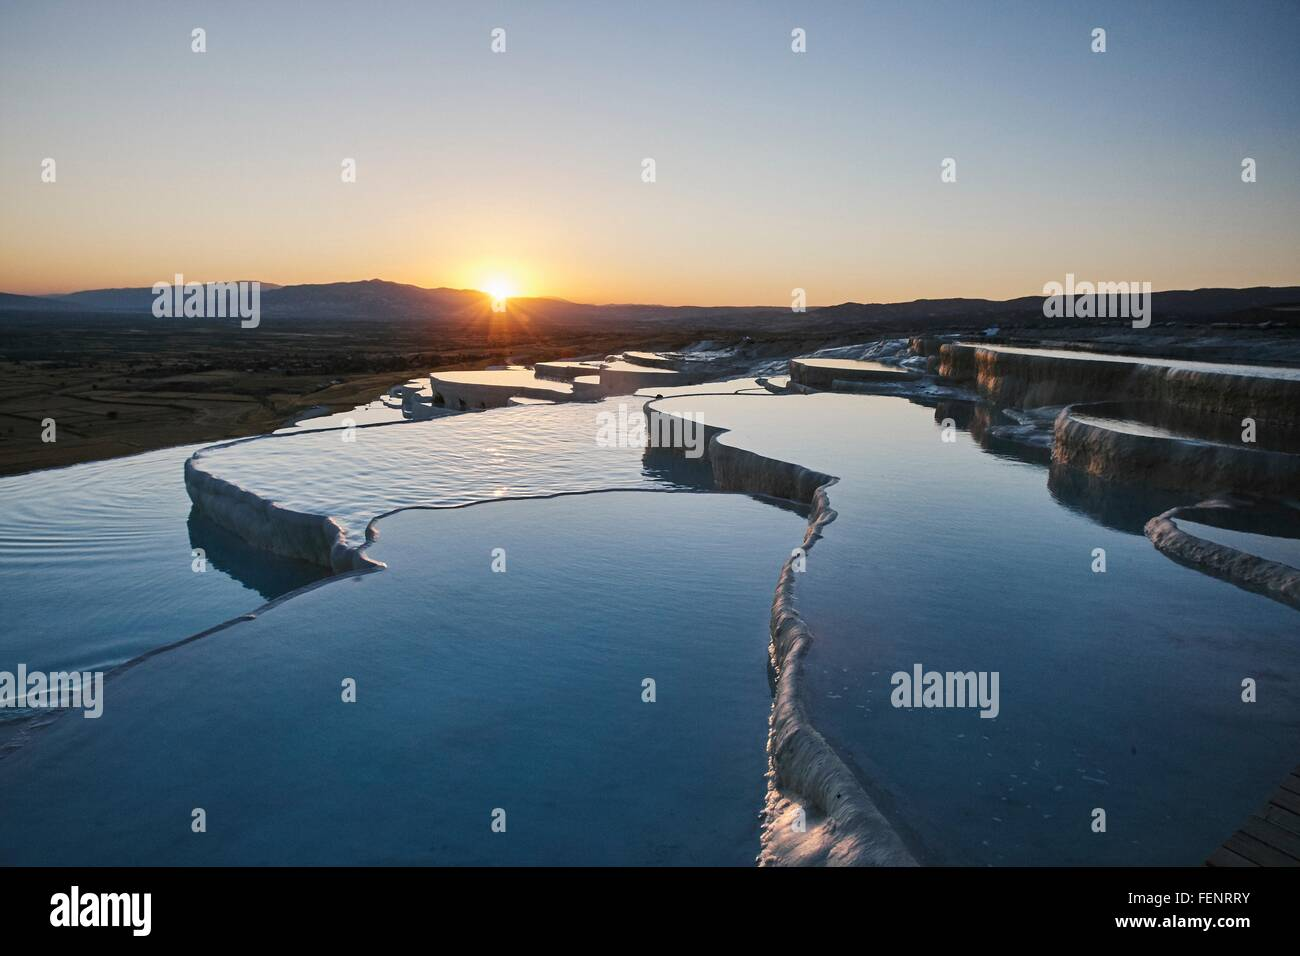 Hot spring terraces at sunset, Pamukkale, Anatolia, Turkey - Stock Image